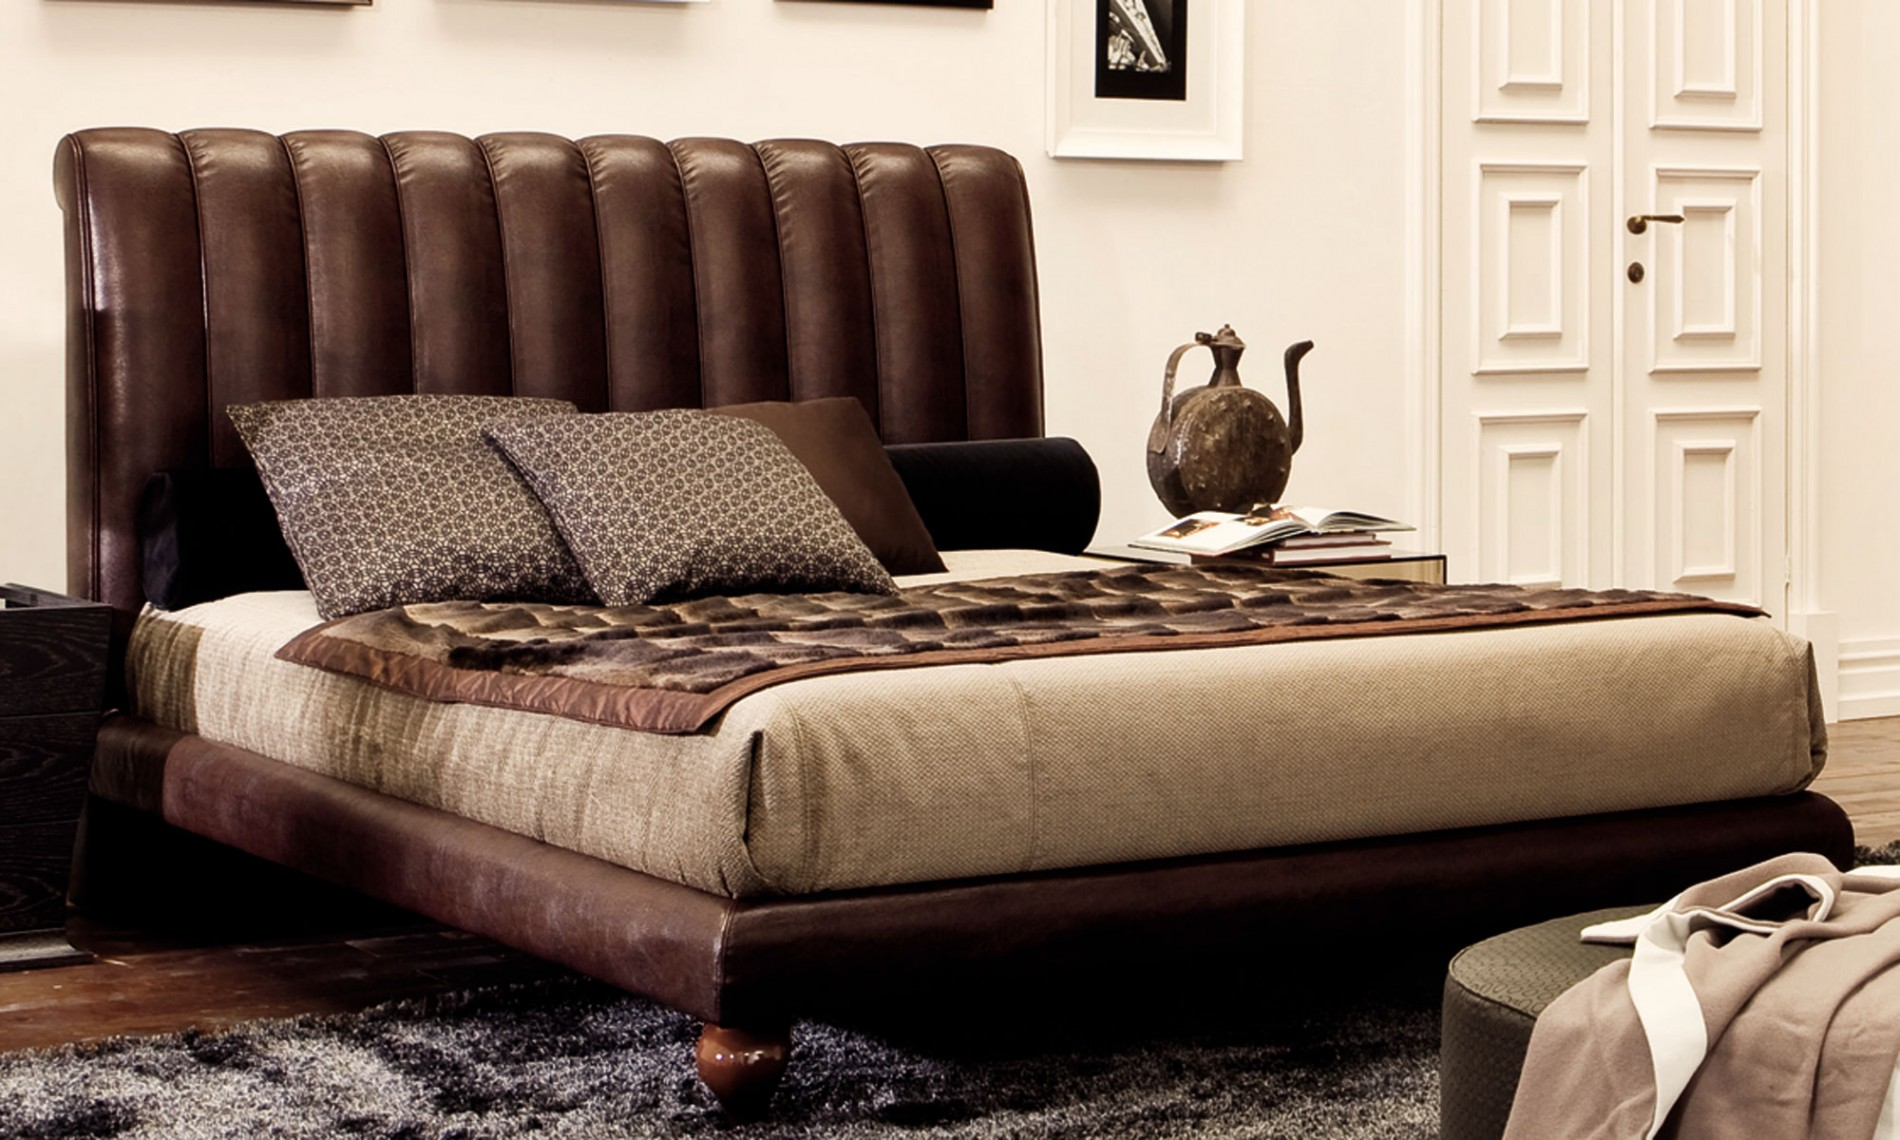 Beverly story zeroventiquattro bed lartdevivre online for Bed stories online